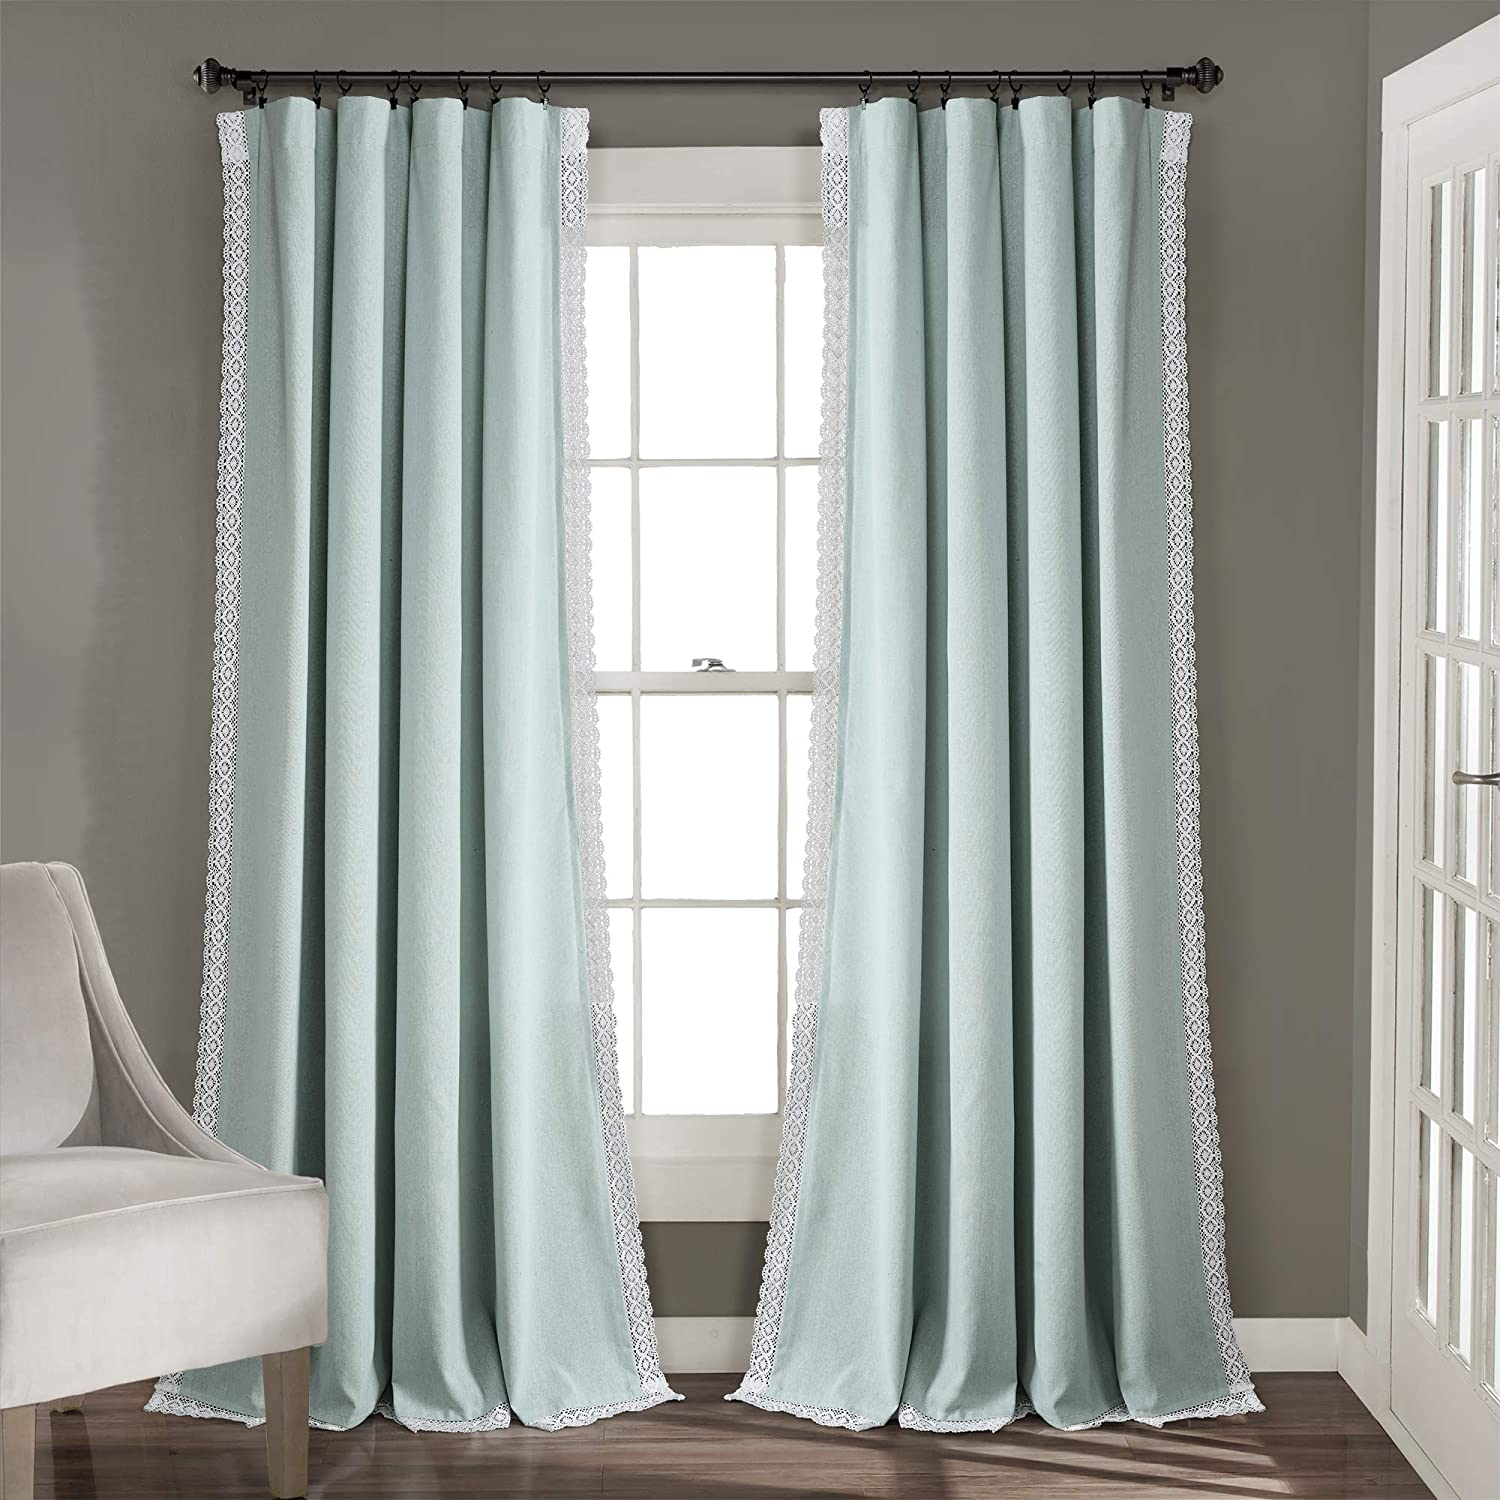 Amazon Com Lush Decor Blue Rosalie Window Curtains Farmhouse Rustic Style Panel Set For Living Dining Room Bedroom Pair 95 X 54 95 X 54 Home Kitchen